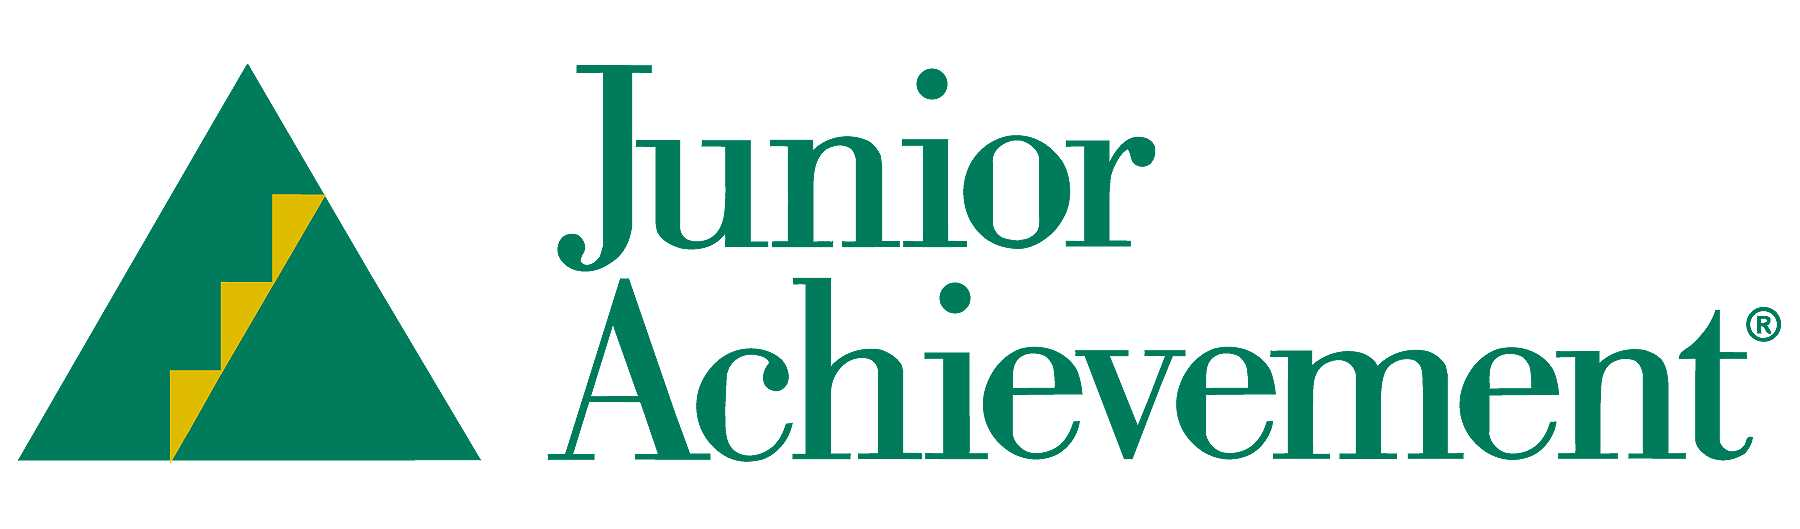 junior_achievement_logo